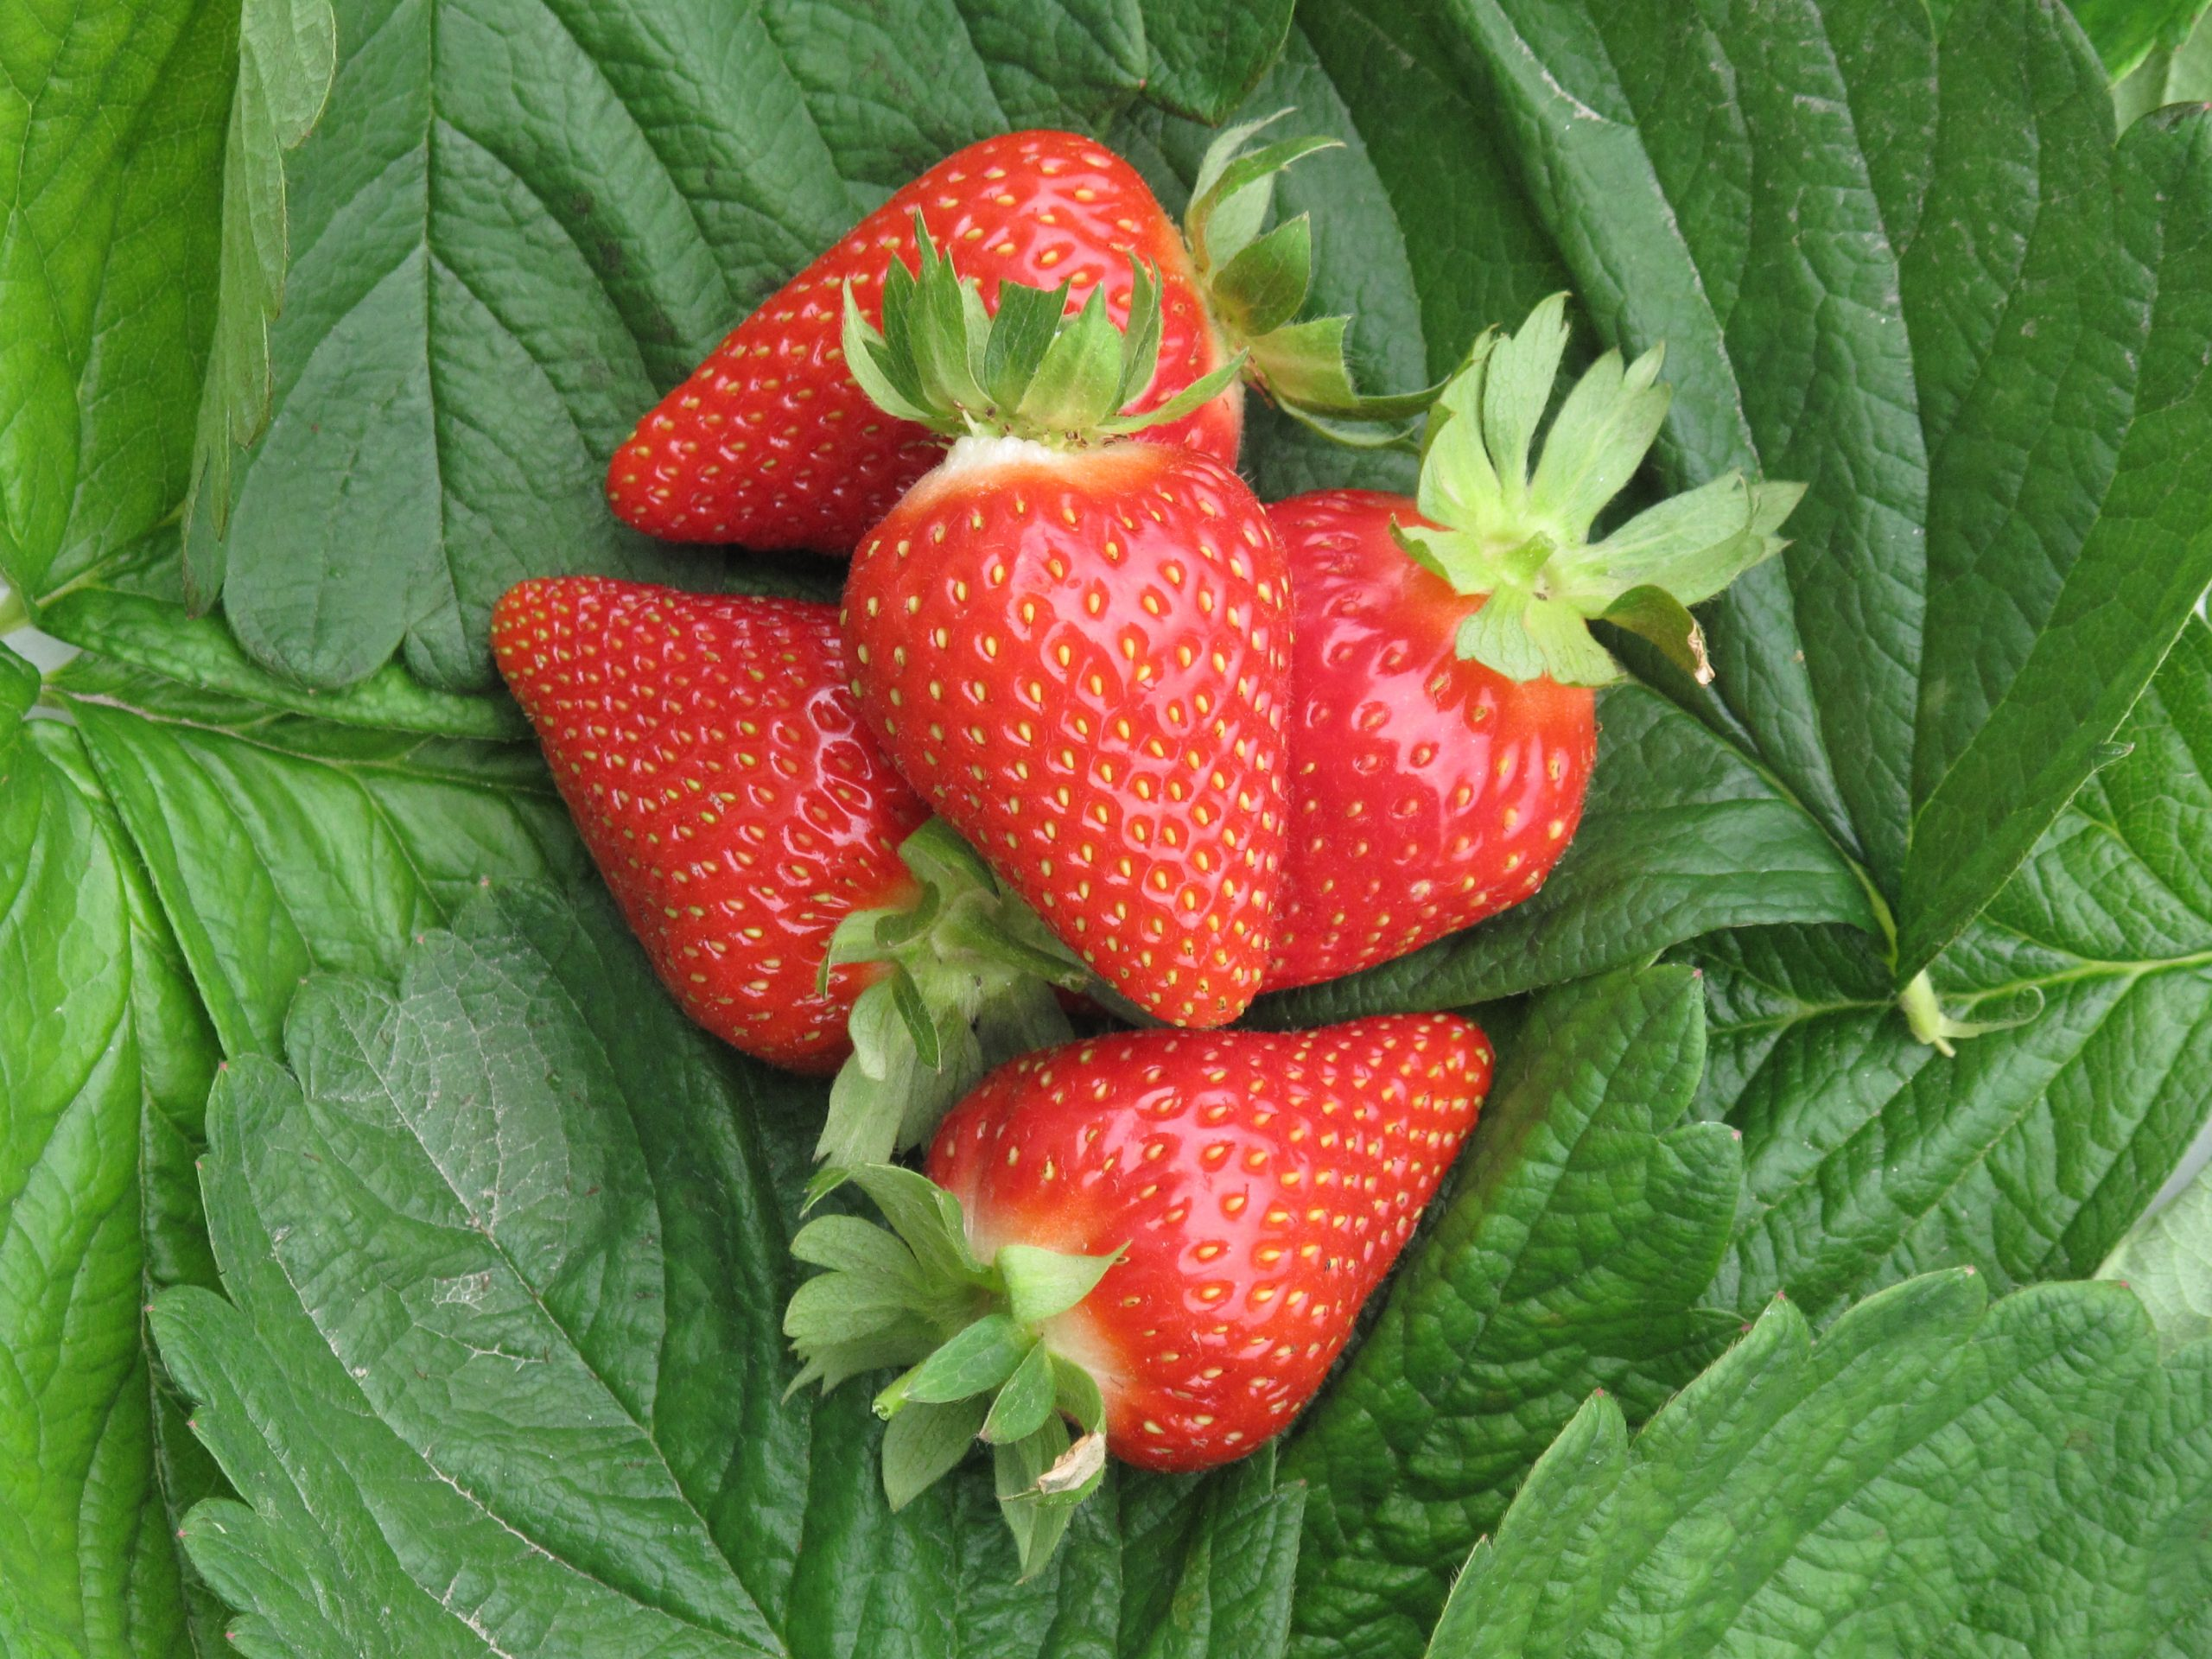 """President Pier Filippo Tagliani said the CIV's chief objective is to increasingly target its R&D towards the development of environmentally sustainable, high quality strawberry varieties that """"satisfy every player in the supply chain, from the producer to the end user, at international level."""""""